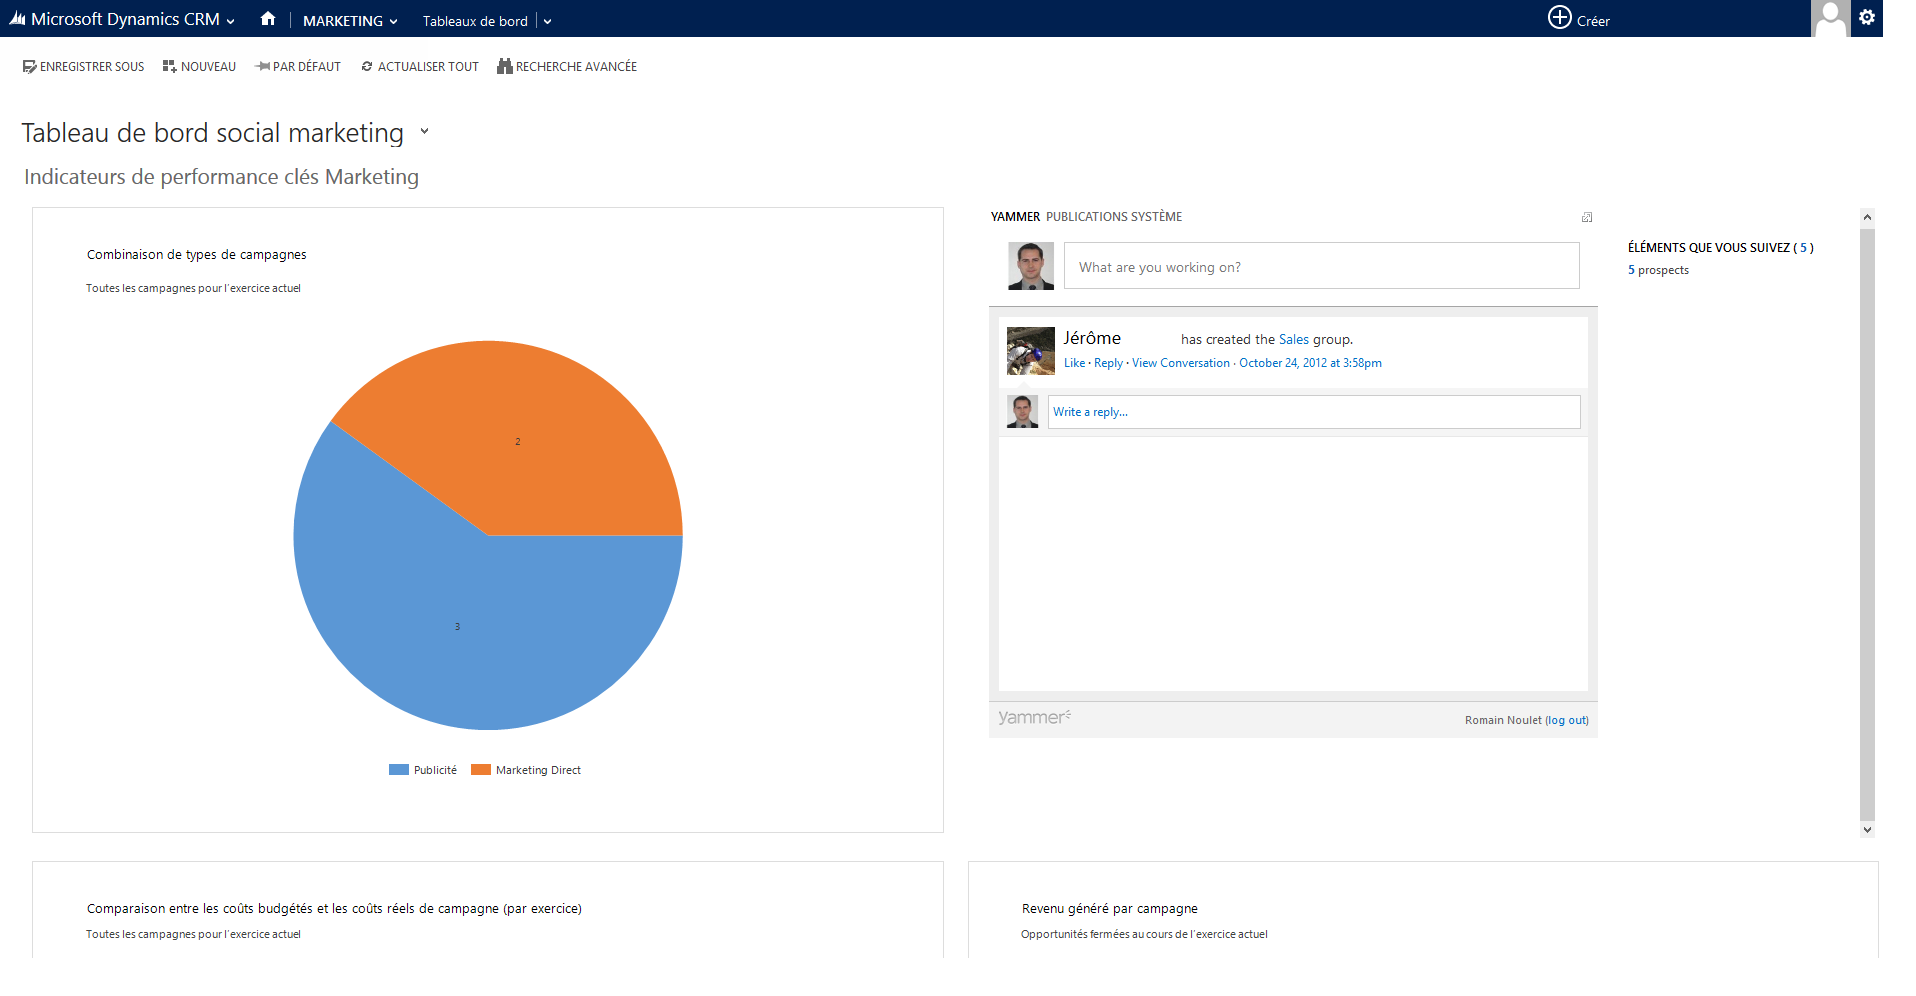 Microsoft Dynamics CRM: Contact type, insurance against loss of data, Labels